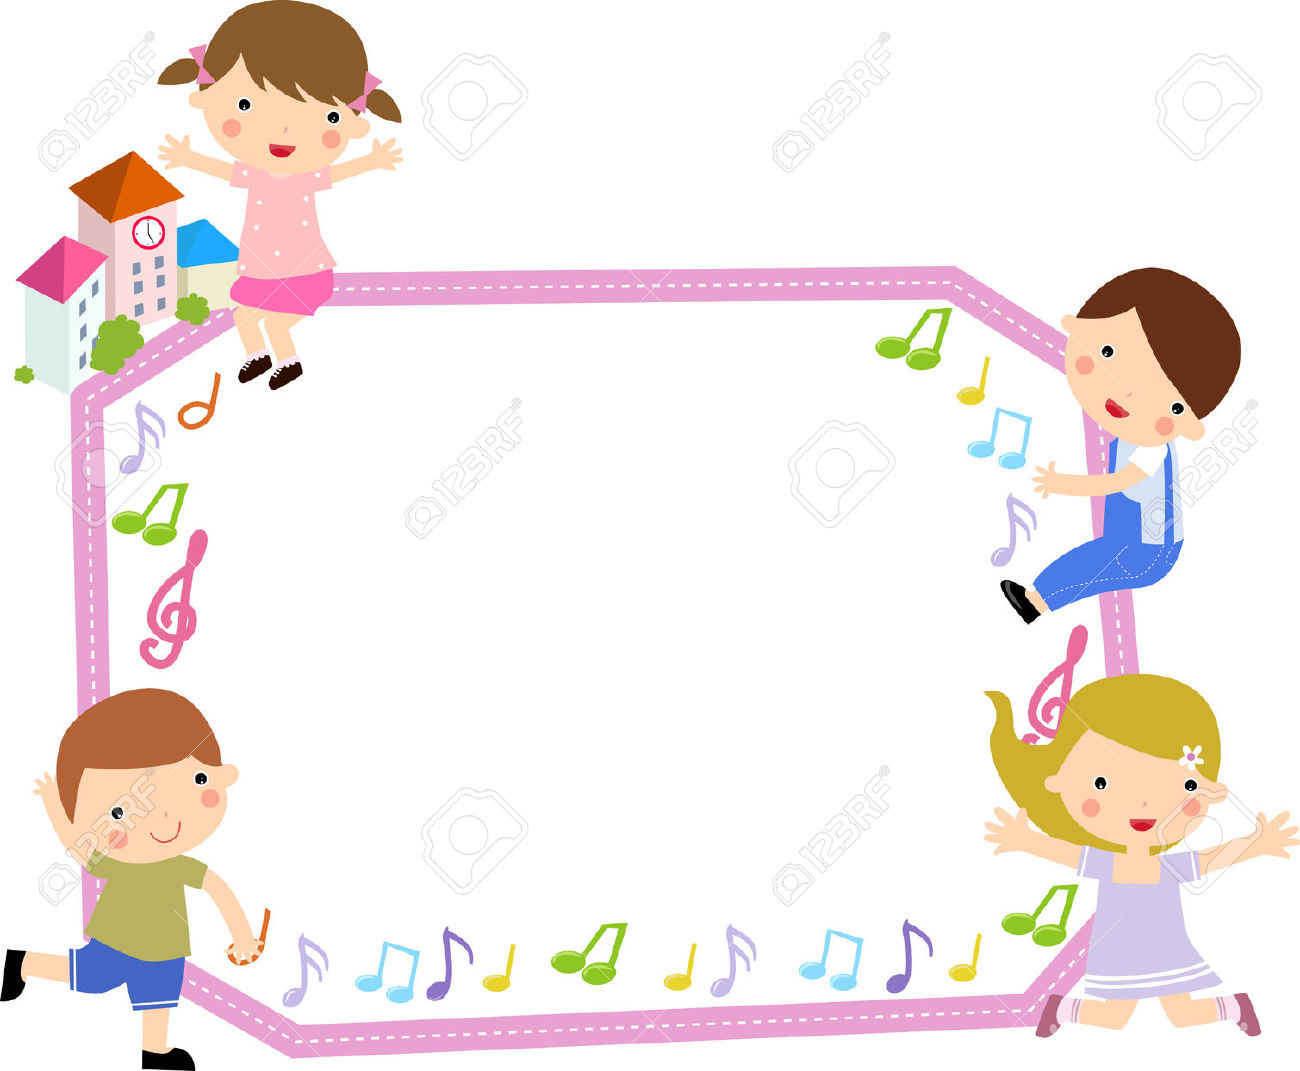 Cute baby storybook frame clipart image transparent download Cute school clipart frame - ClipartFox image transparent download